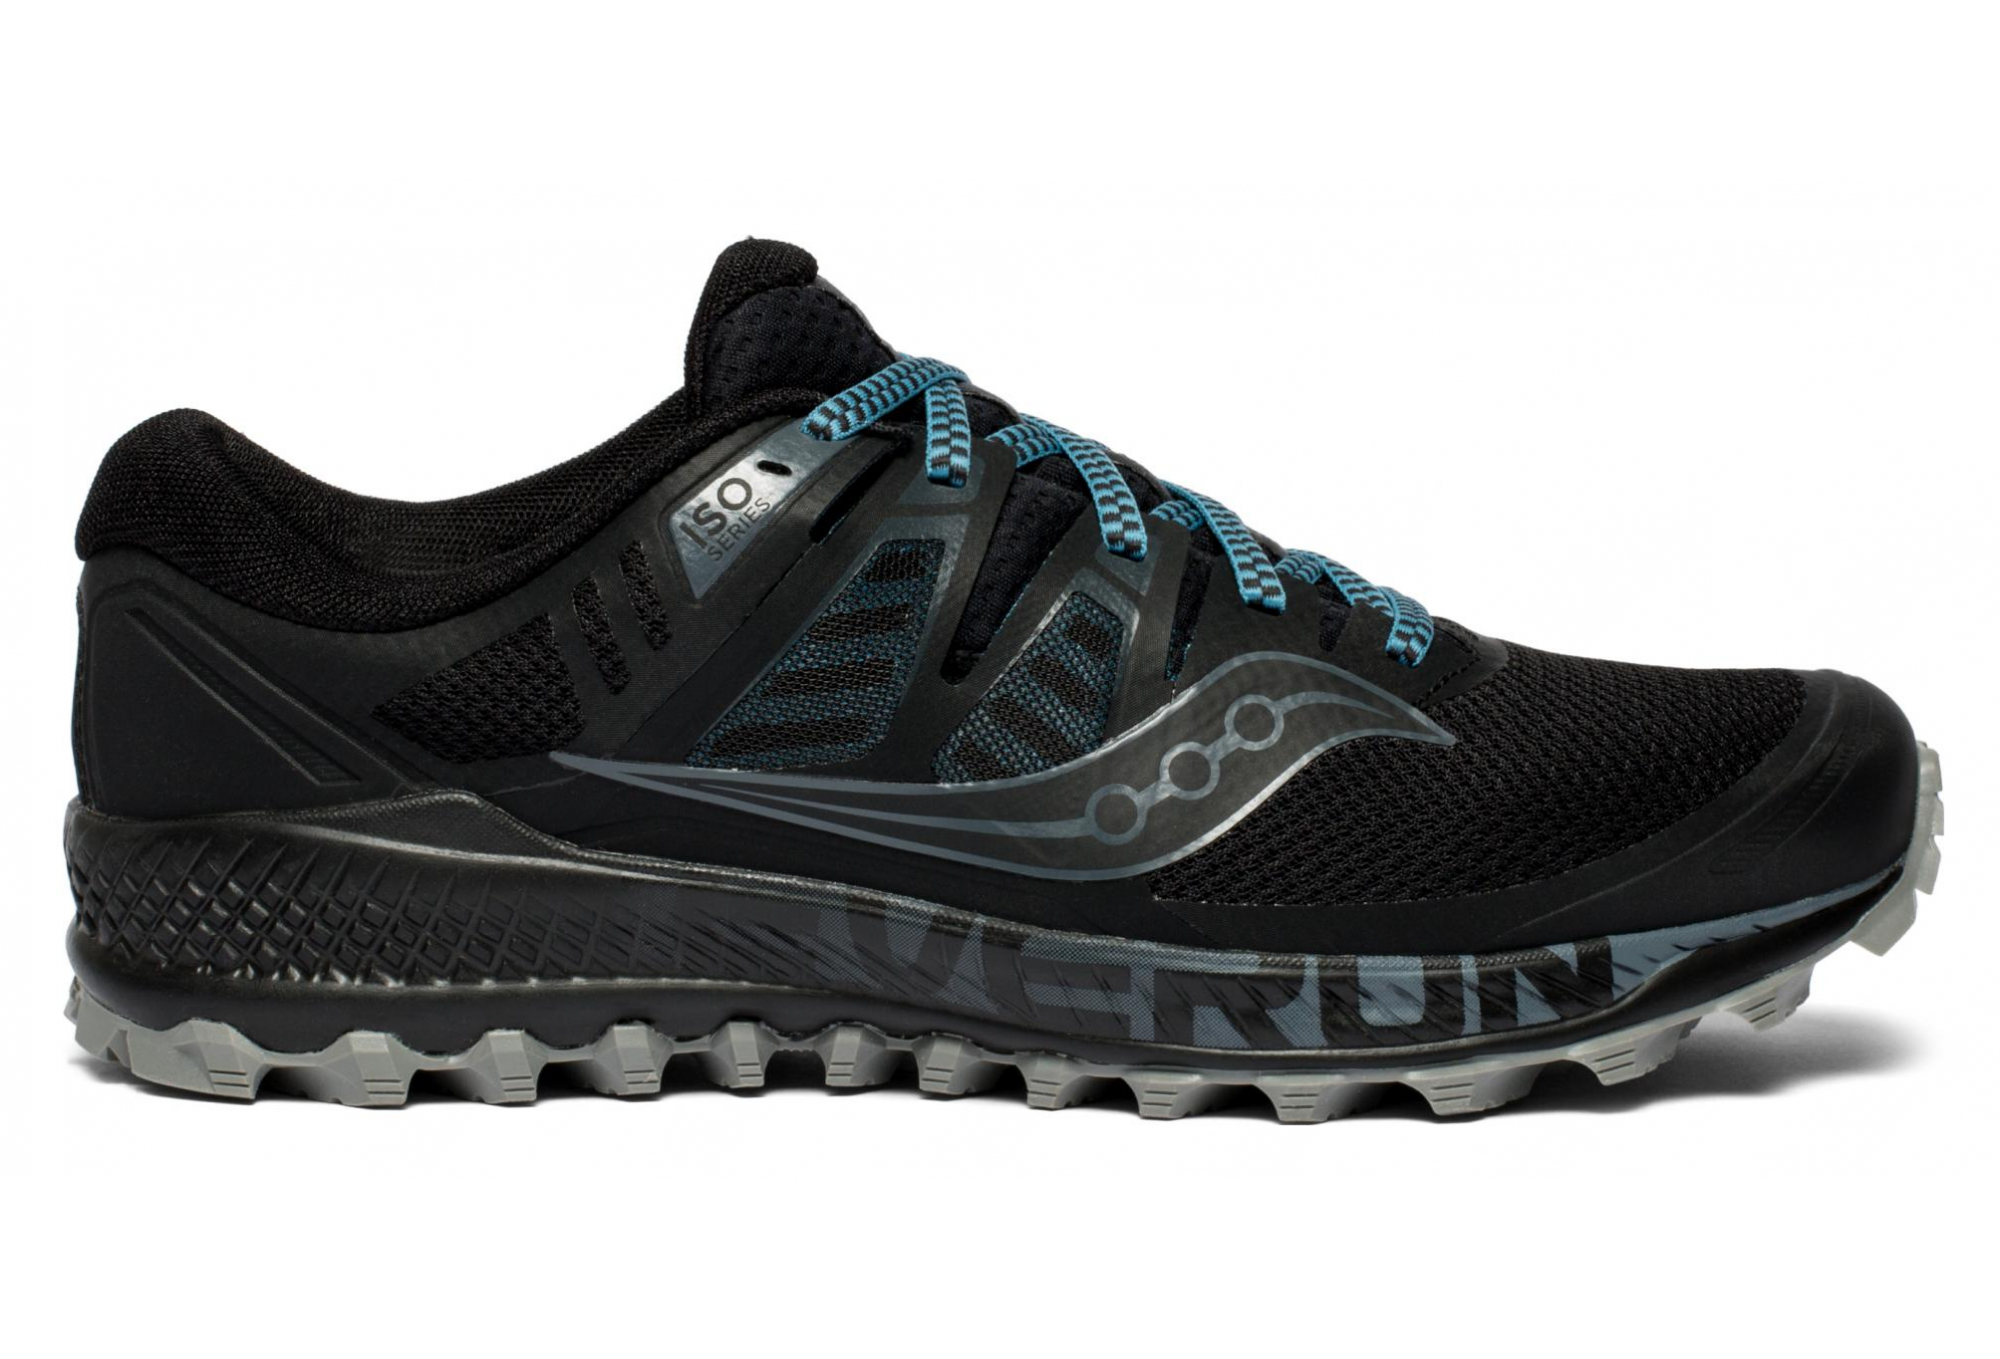 SAUCONY PEREGRINE ISO Men's Trail Shoes